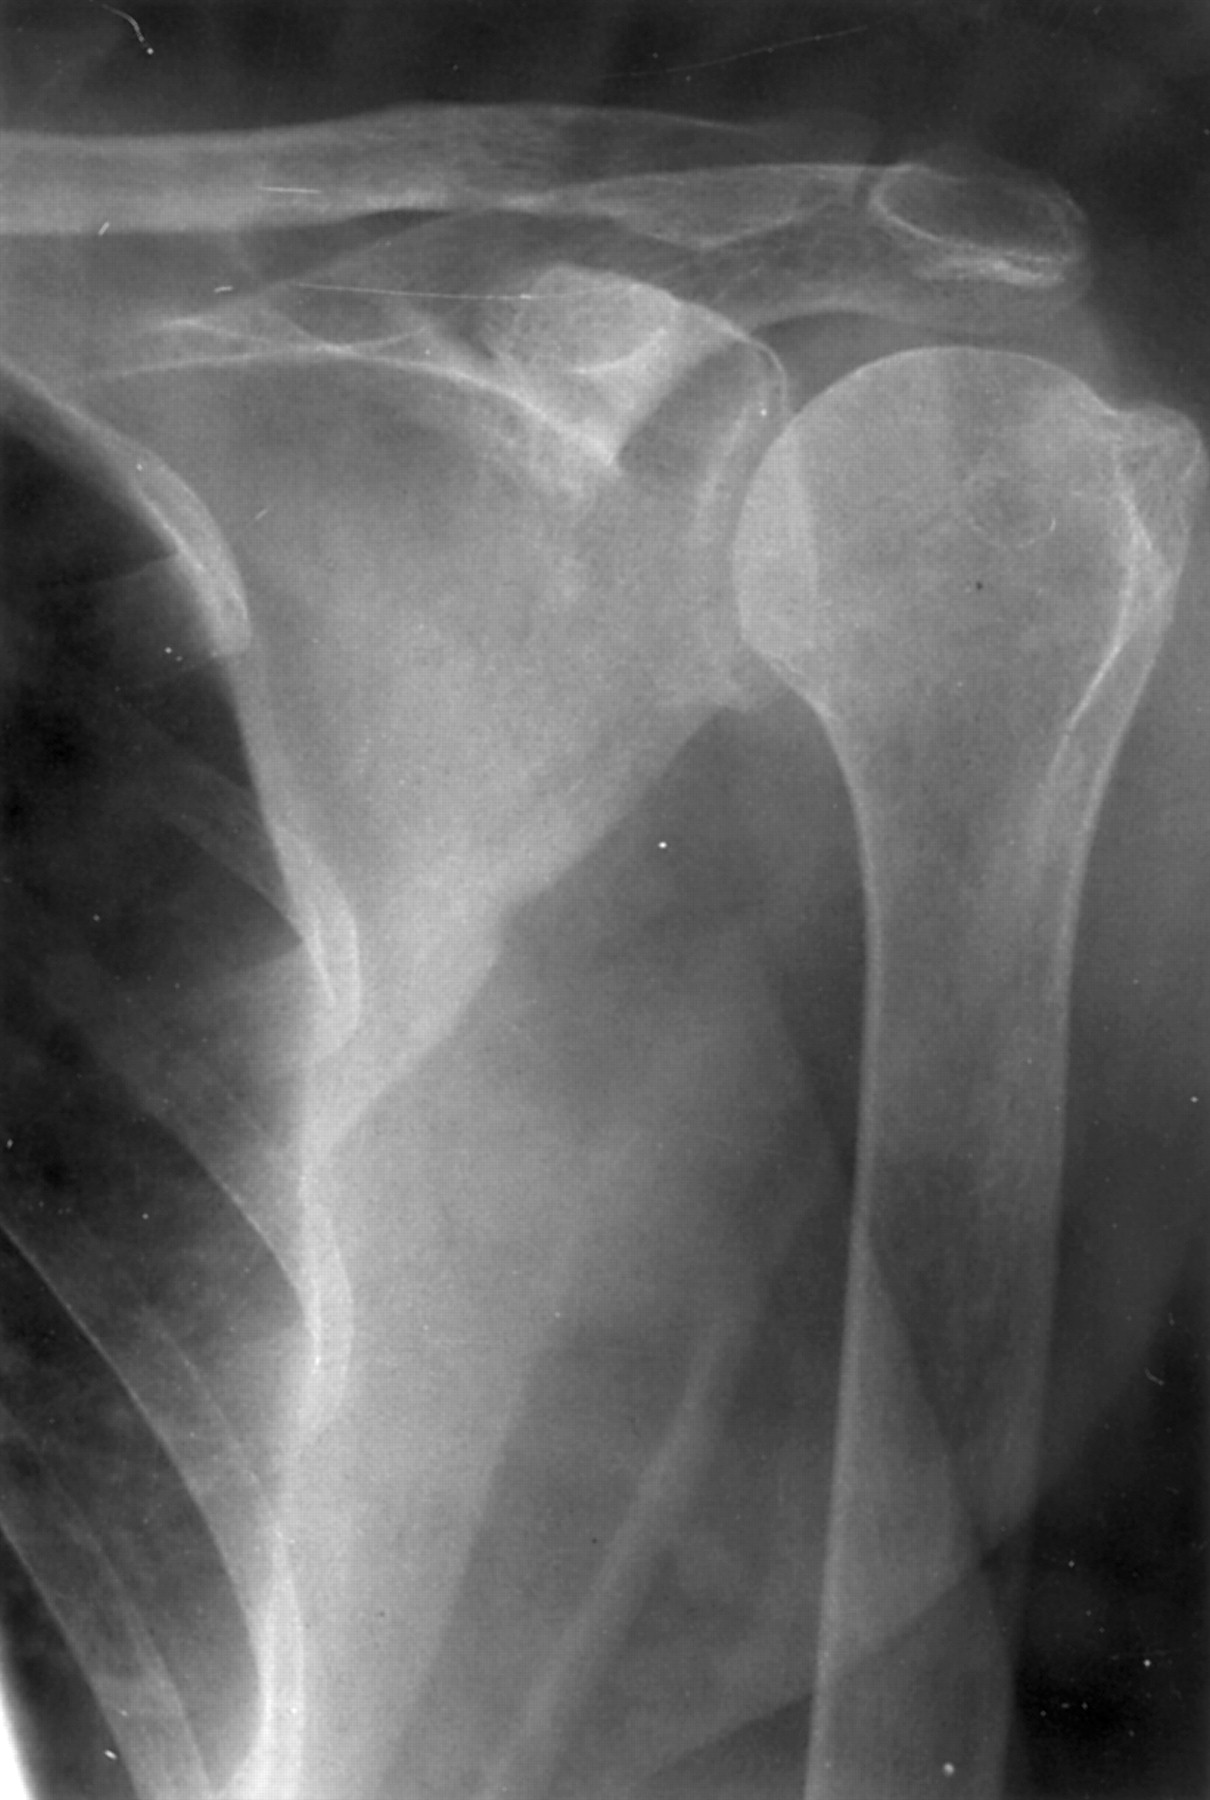 Relation Of Glenohumeral And Acromioclavicular Joint Destruction In